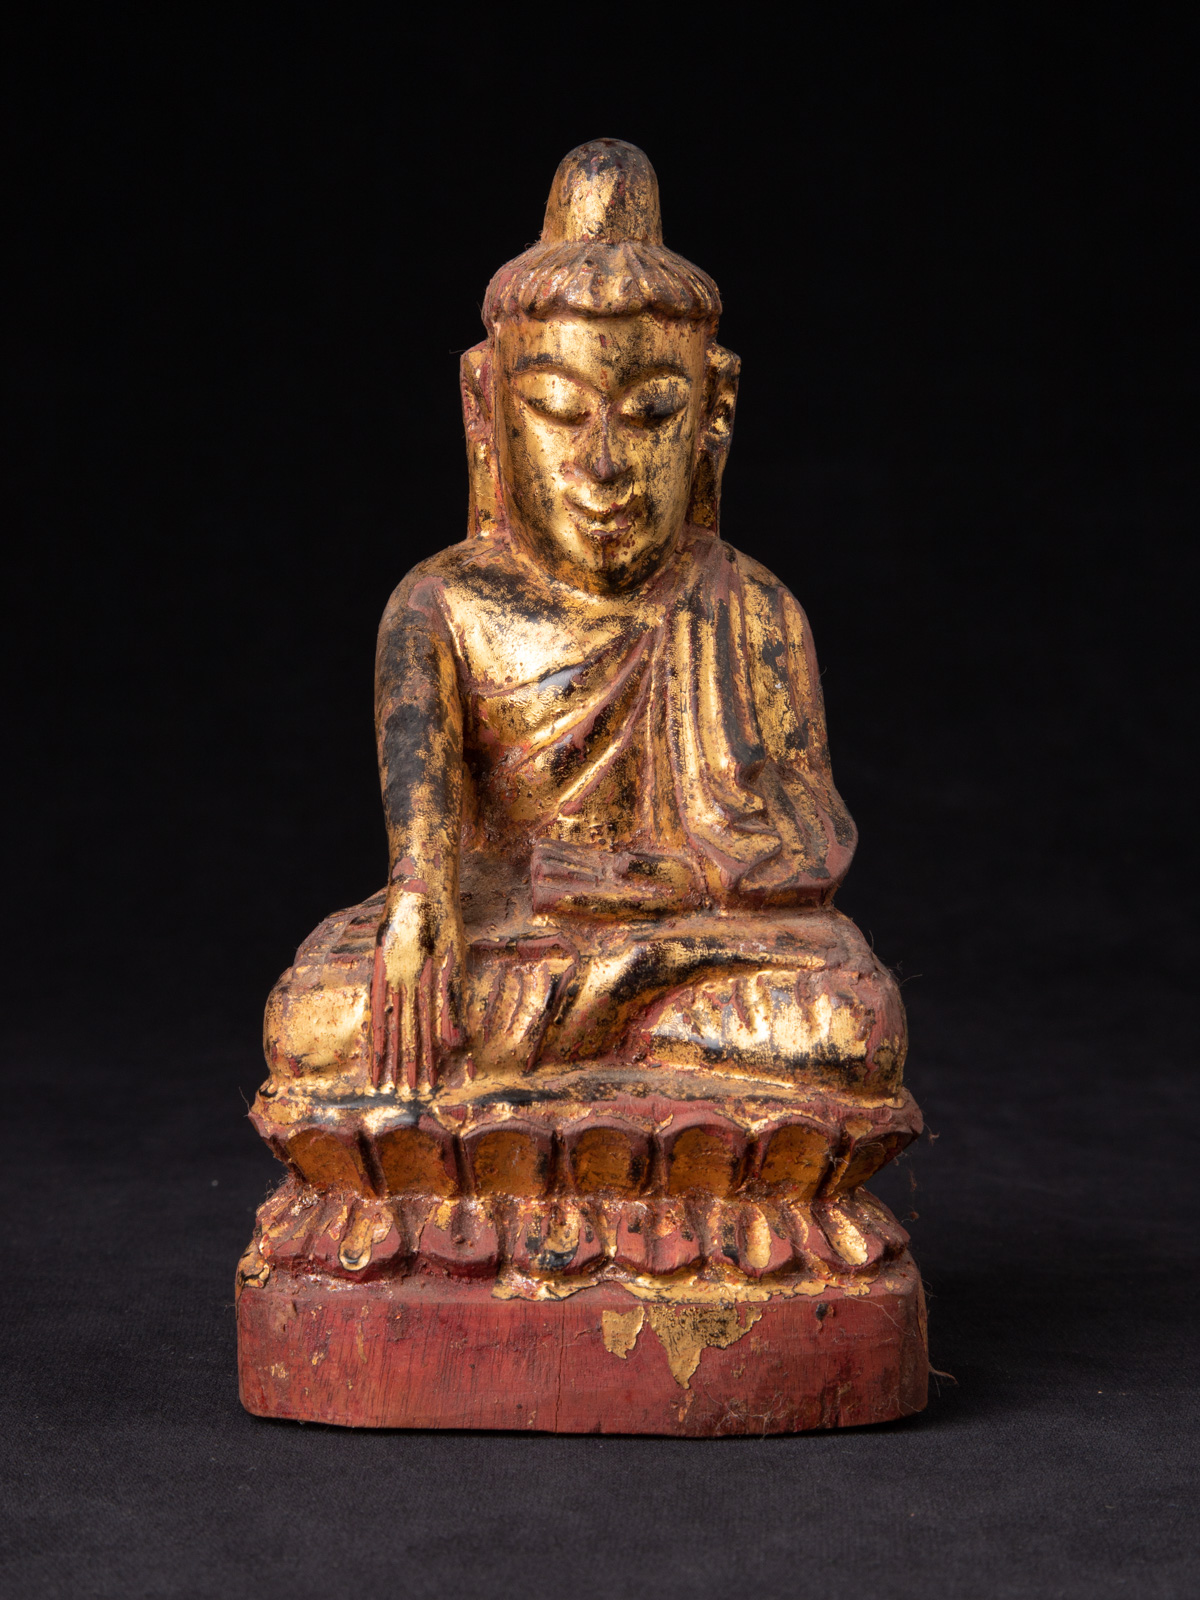 Antique Burmese Shan Buddha statue from Burma made from Wood